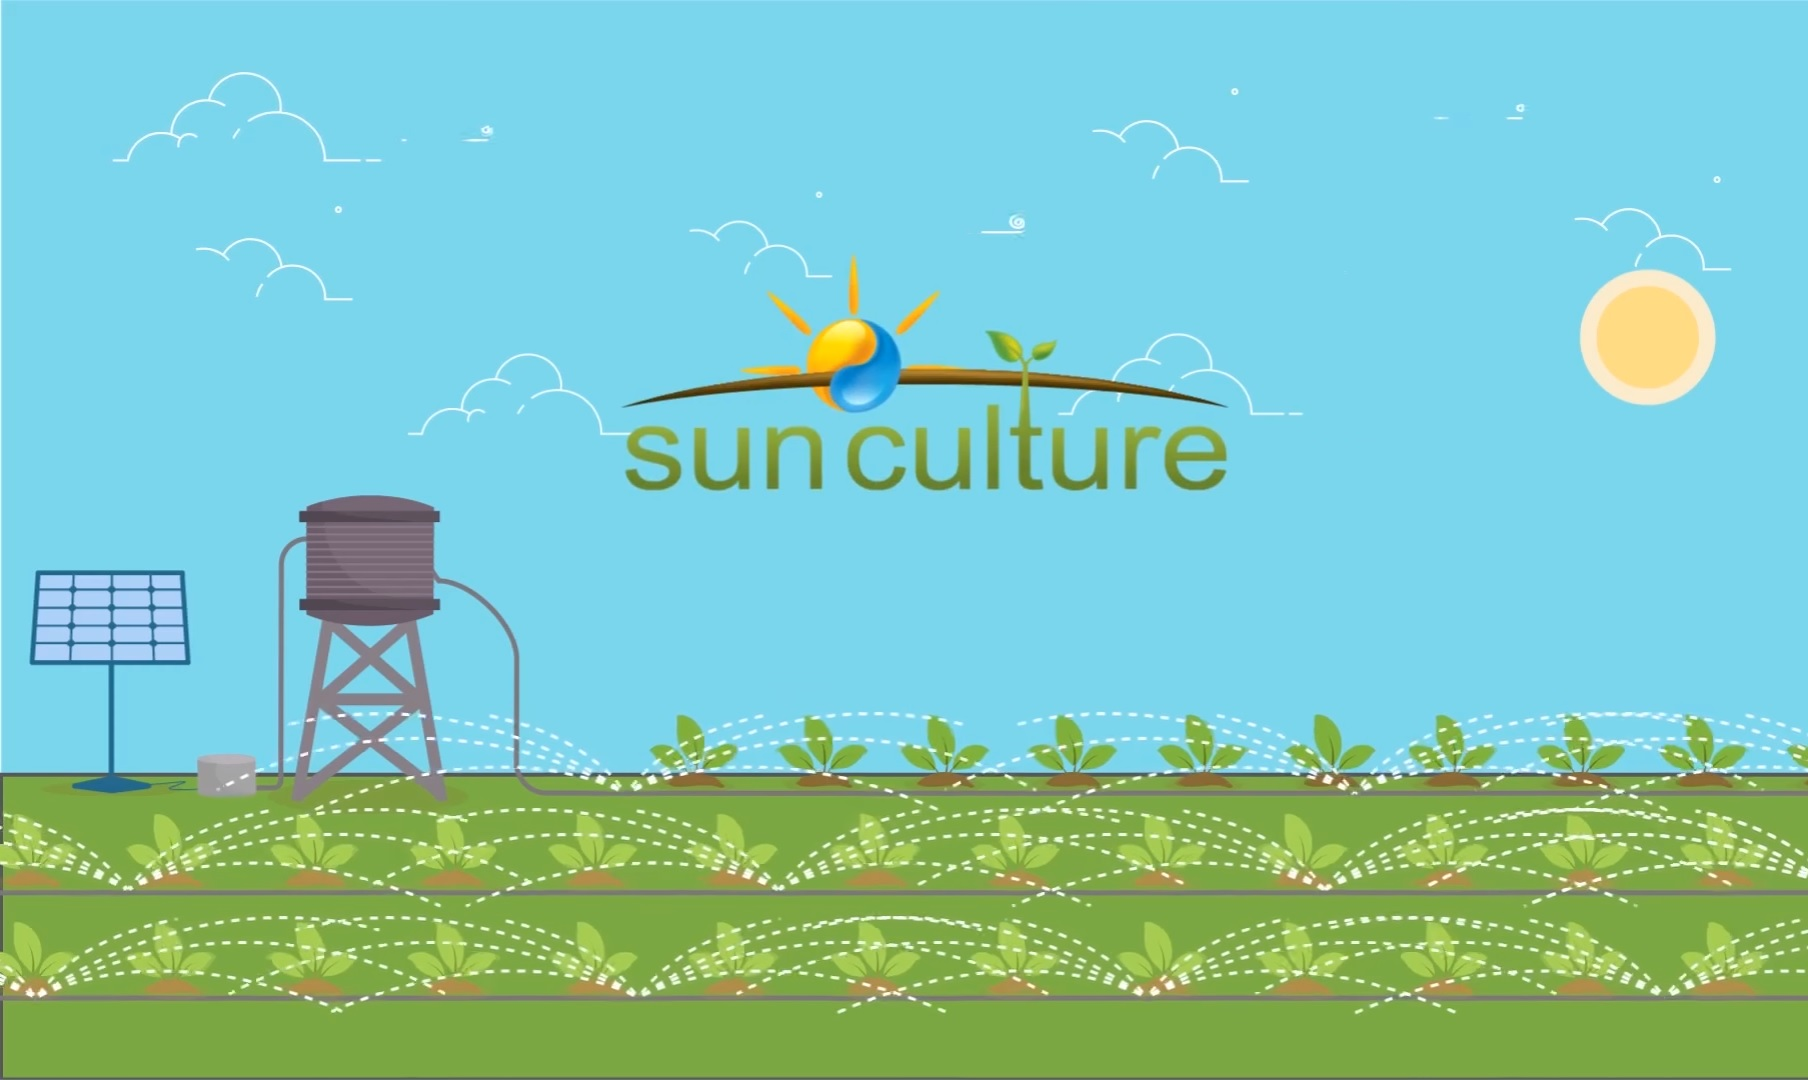 Sunculture - irrigation as a service